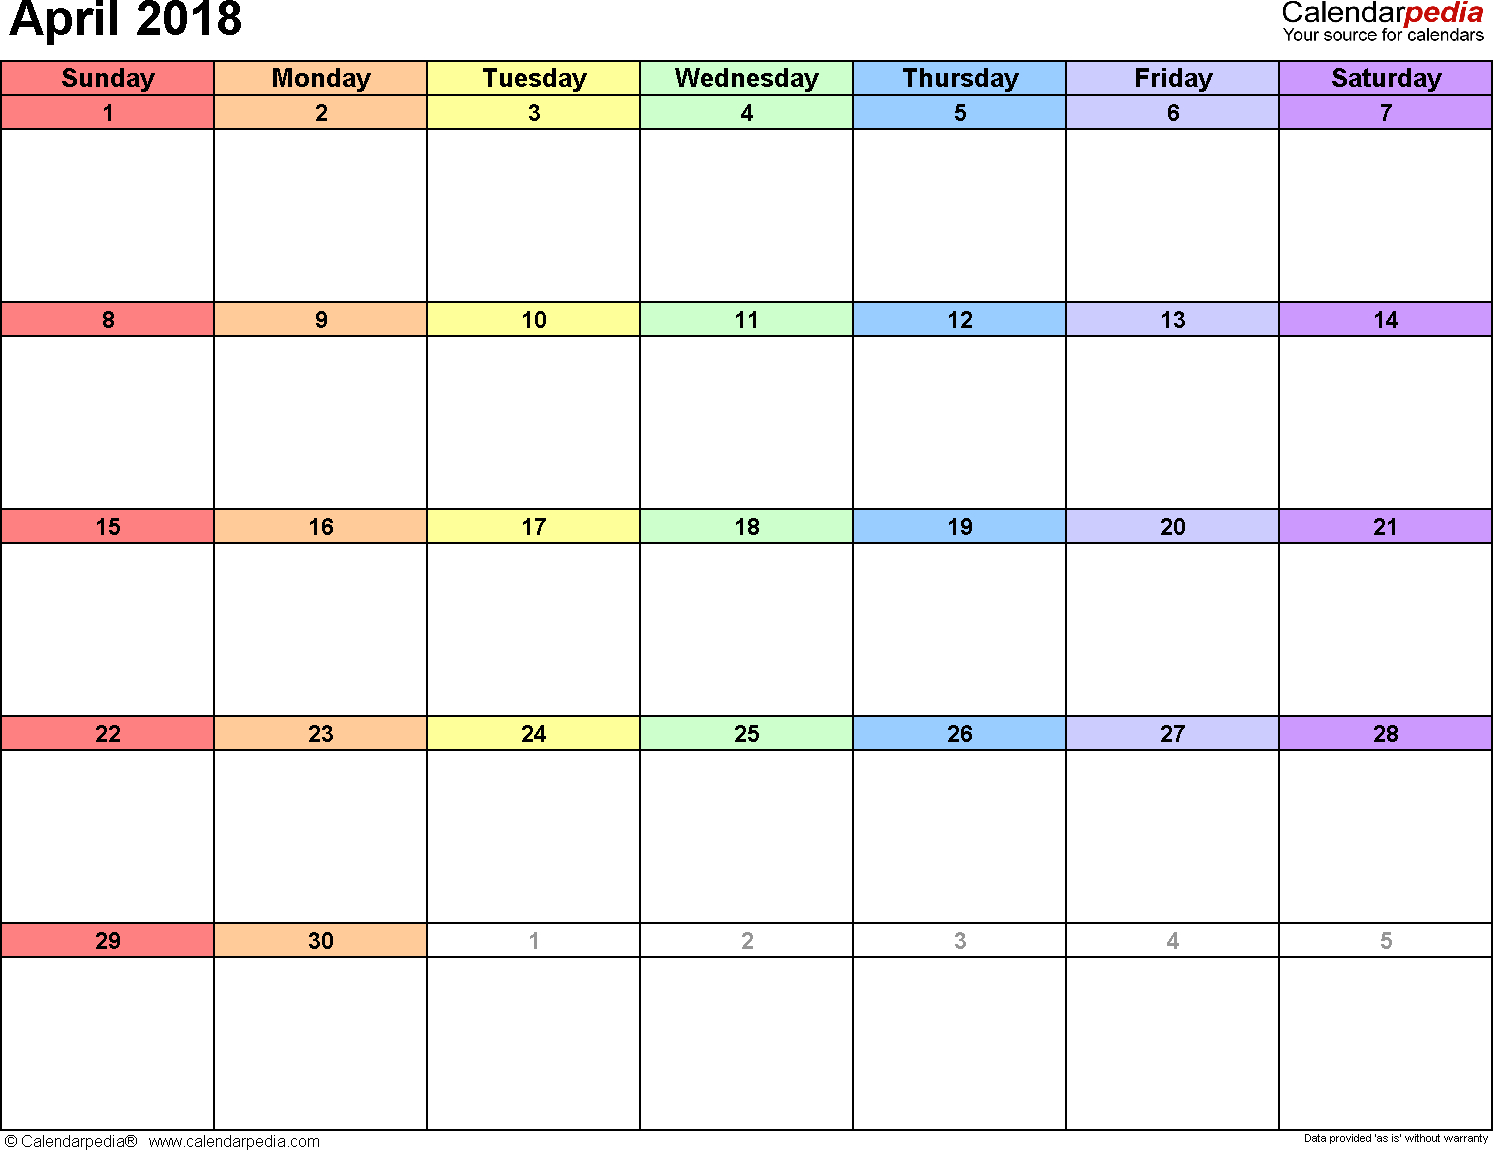 April 2018 Calendars For Word, Excel & Pdf inside August Fun Calendar Template